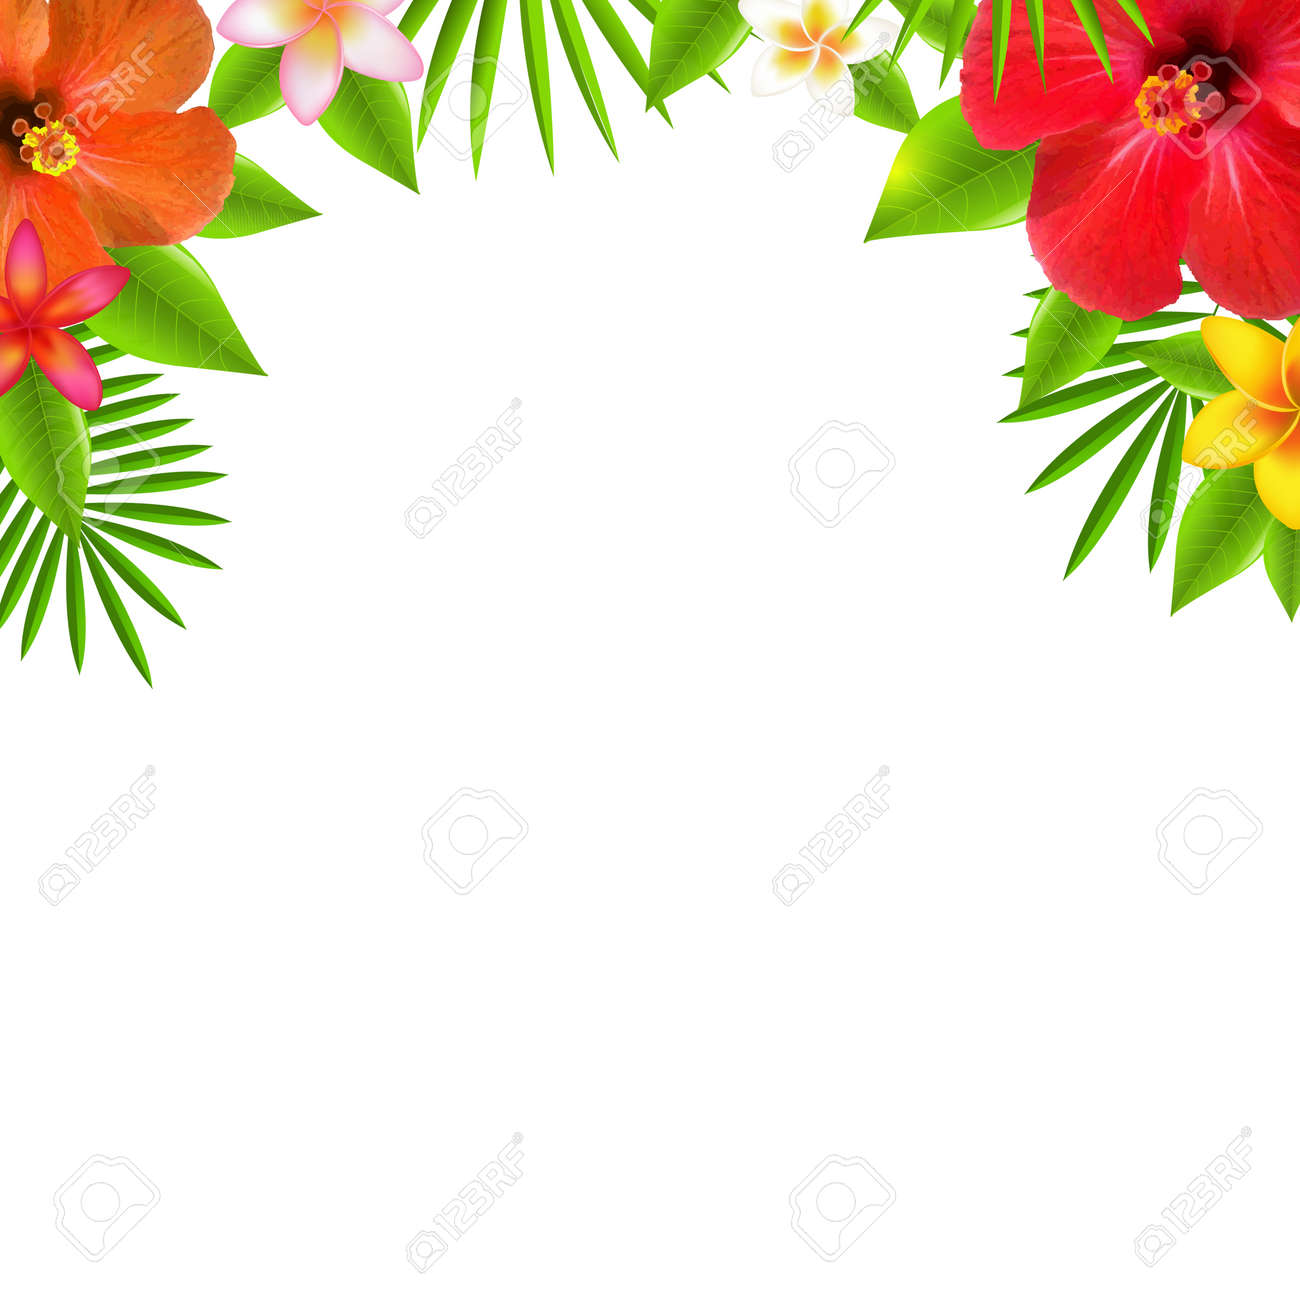 Tropical Flowers Border, With Gradient Mesh, Vector Illustration - 29835878